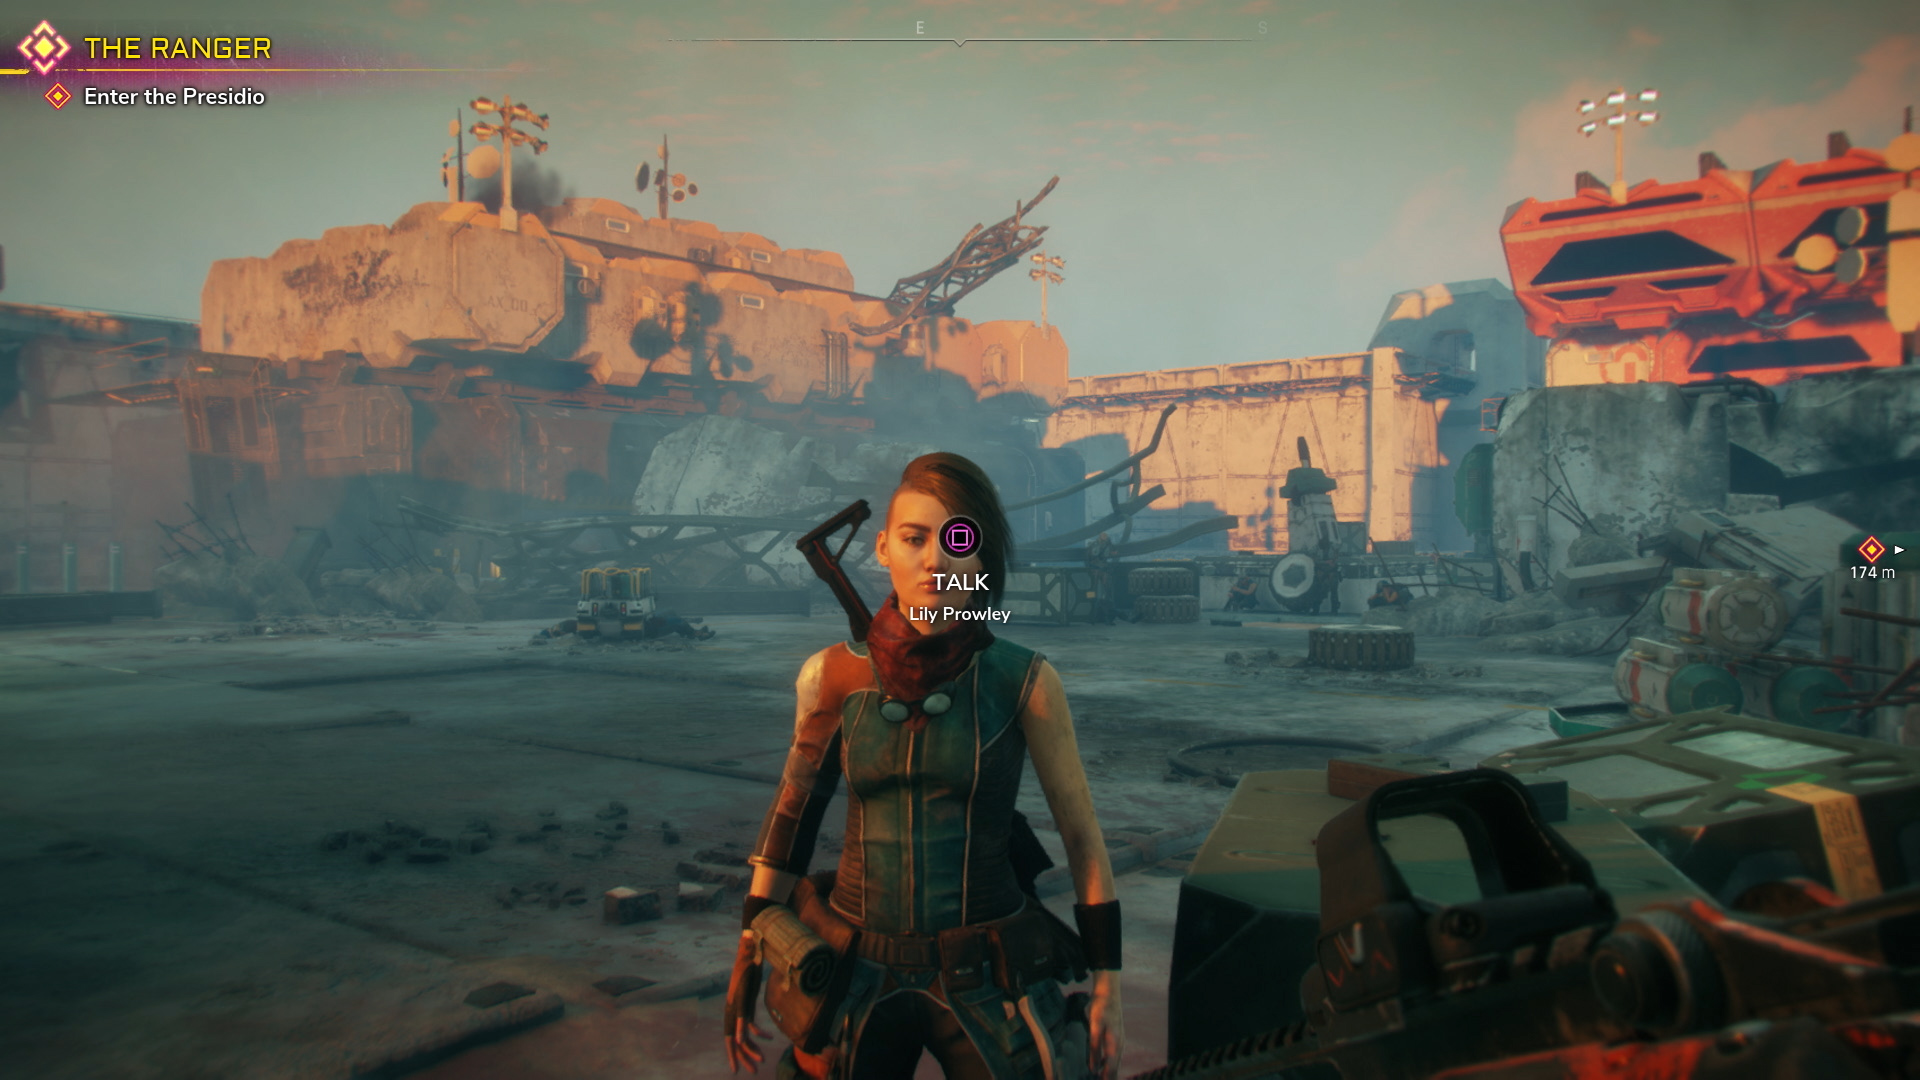 Rage 2 tech analysis: is 1080p60 the best use for Xbox One X and PS4